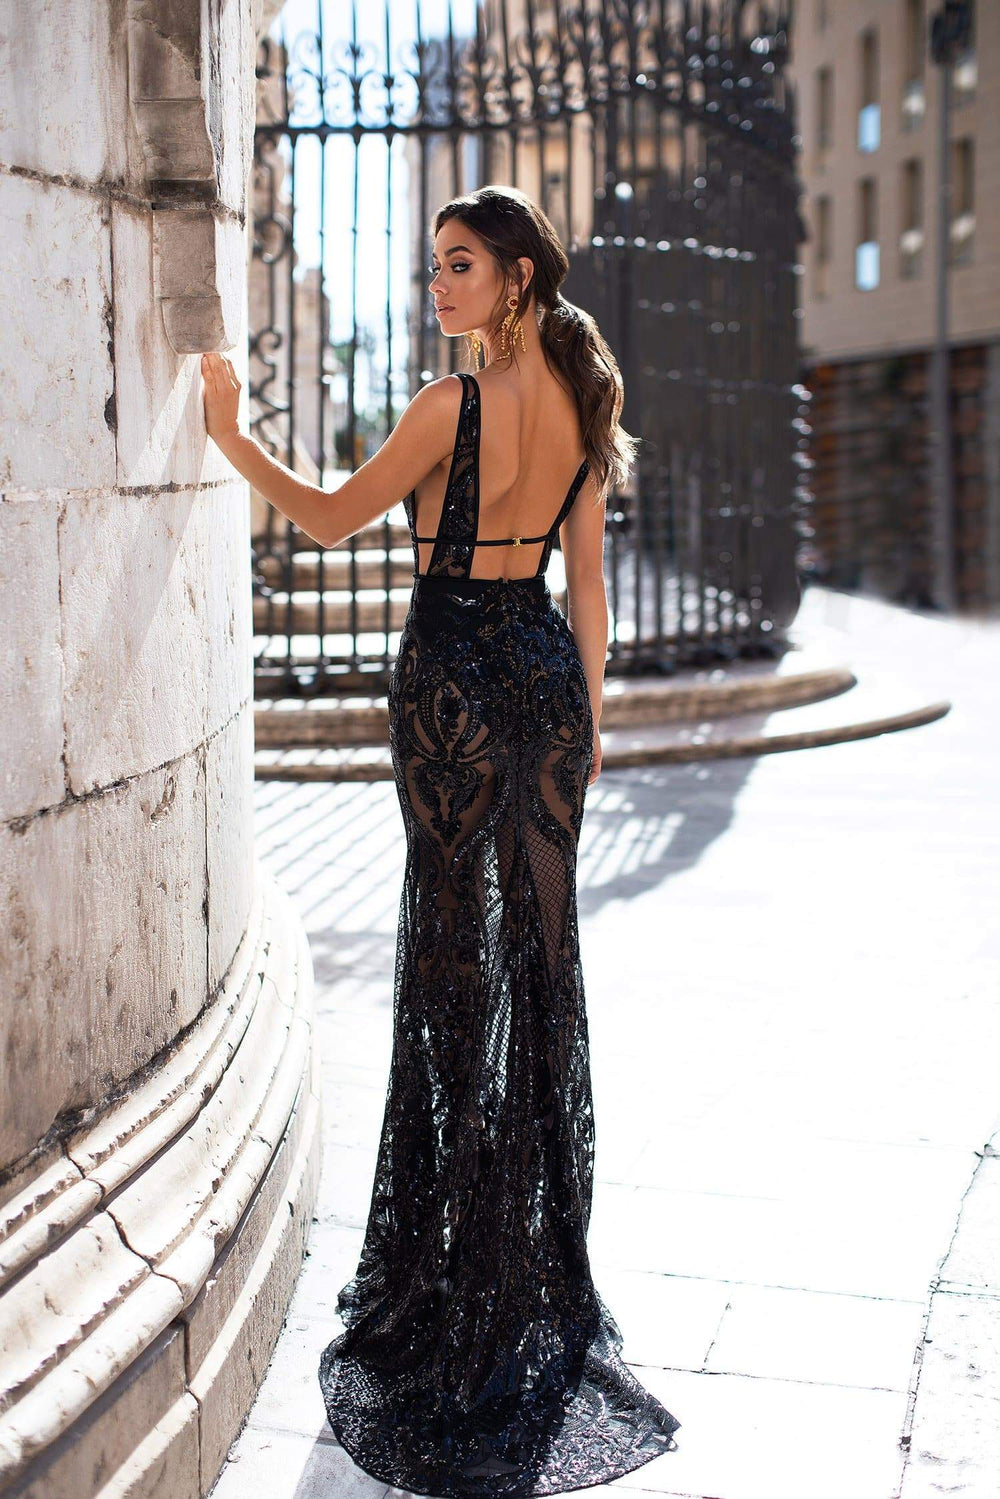 Elyse - Black Patterned Sequins Gown with Plunge Neck & Open Back